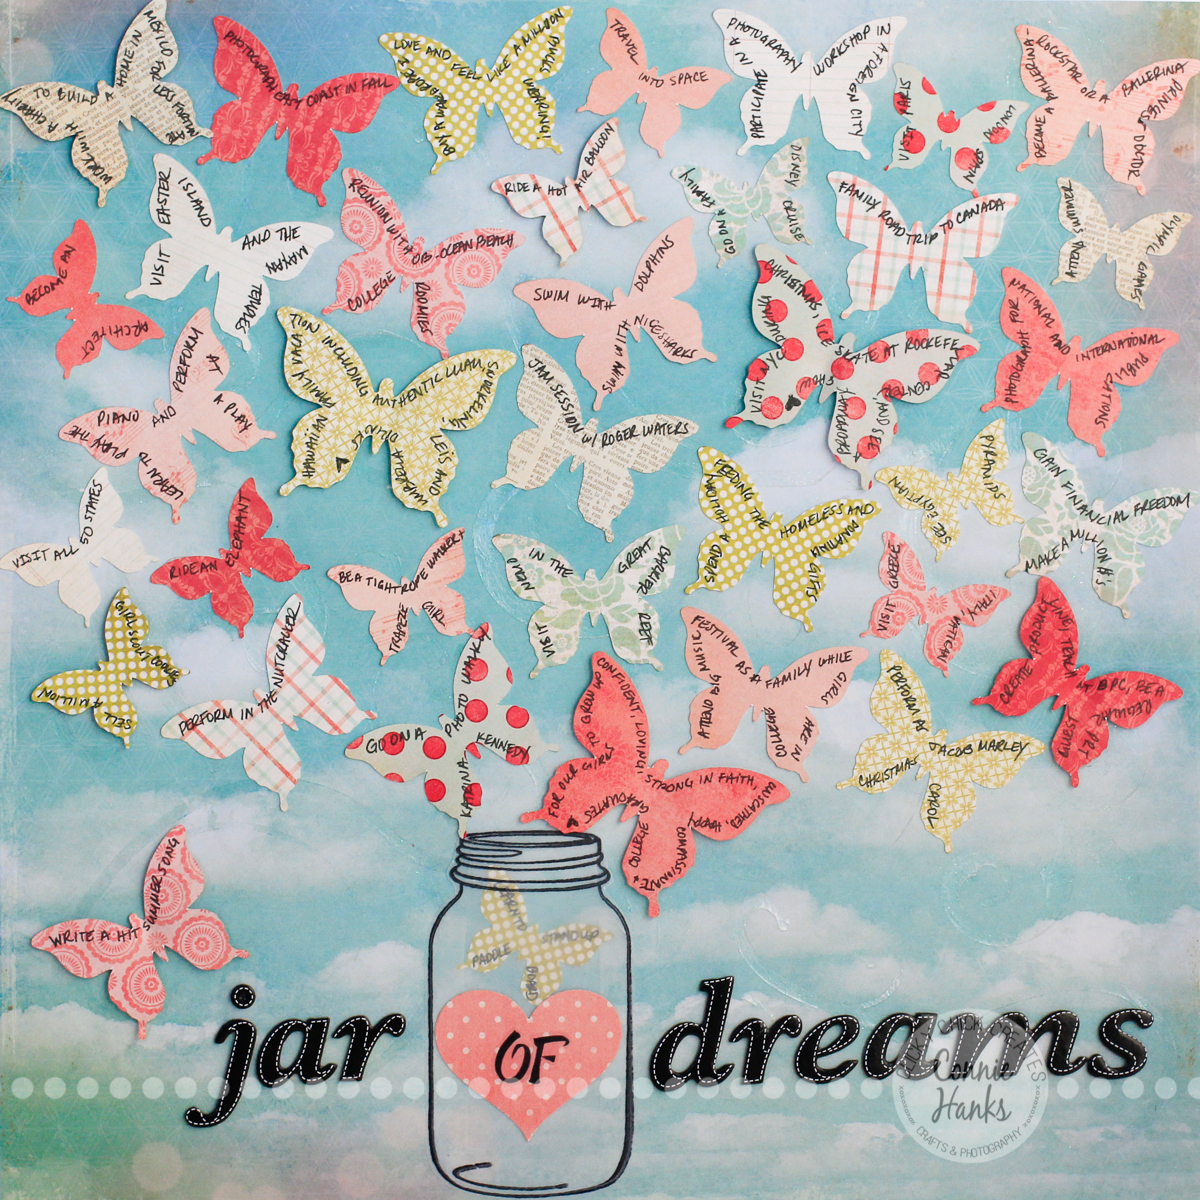 Scrapbook ideas list - Connie Hanks Photography Clickychickcreates Com Jar Of Dreams Layout With Butterflies